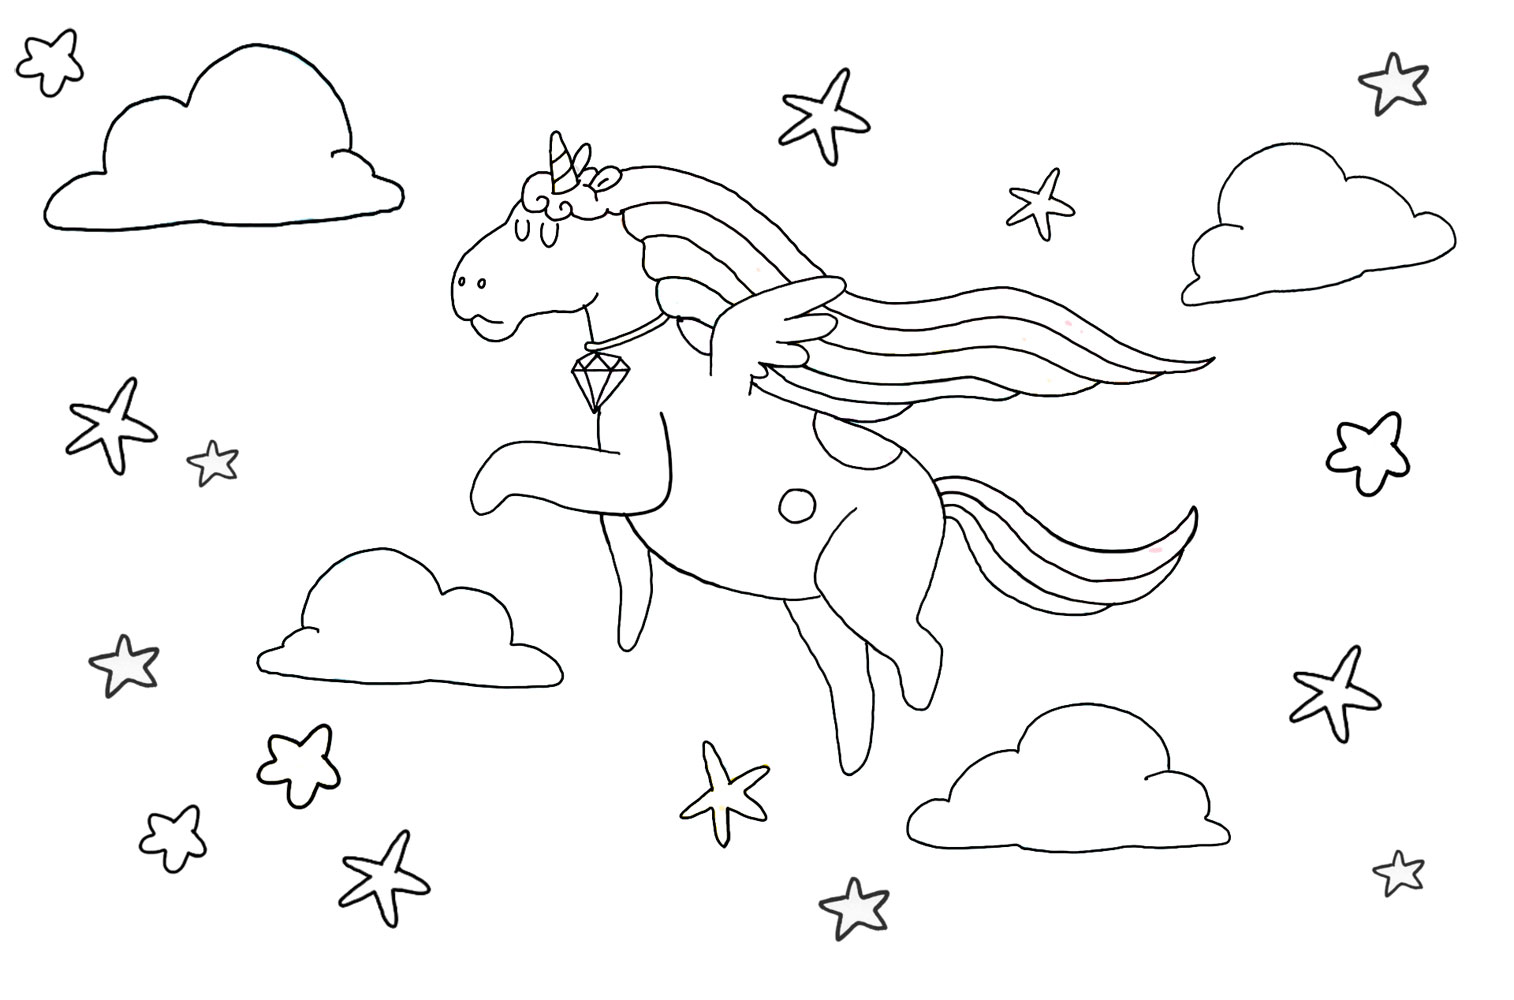 This is a printable colouring page of a cure unicorn flying through a starry sky